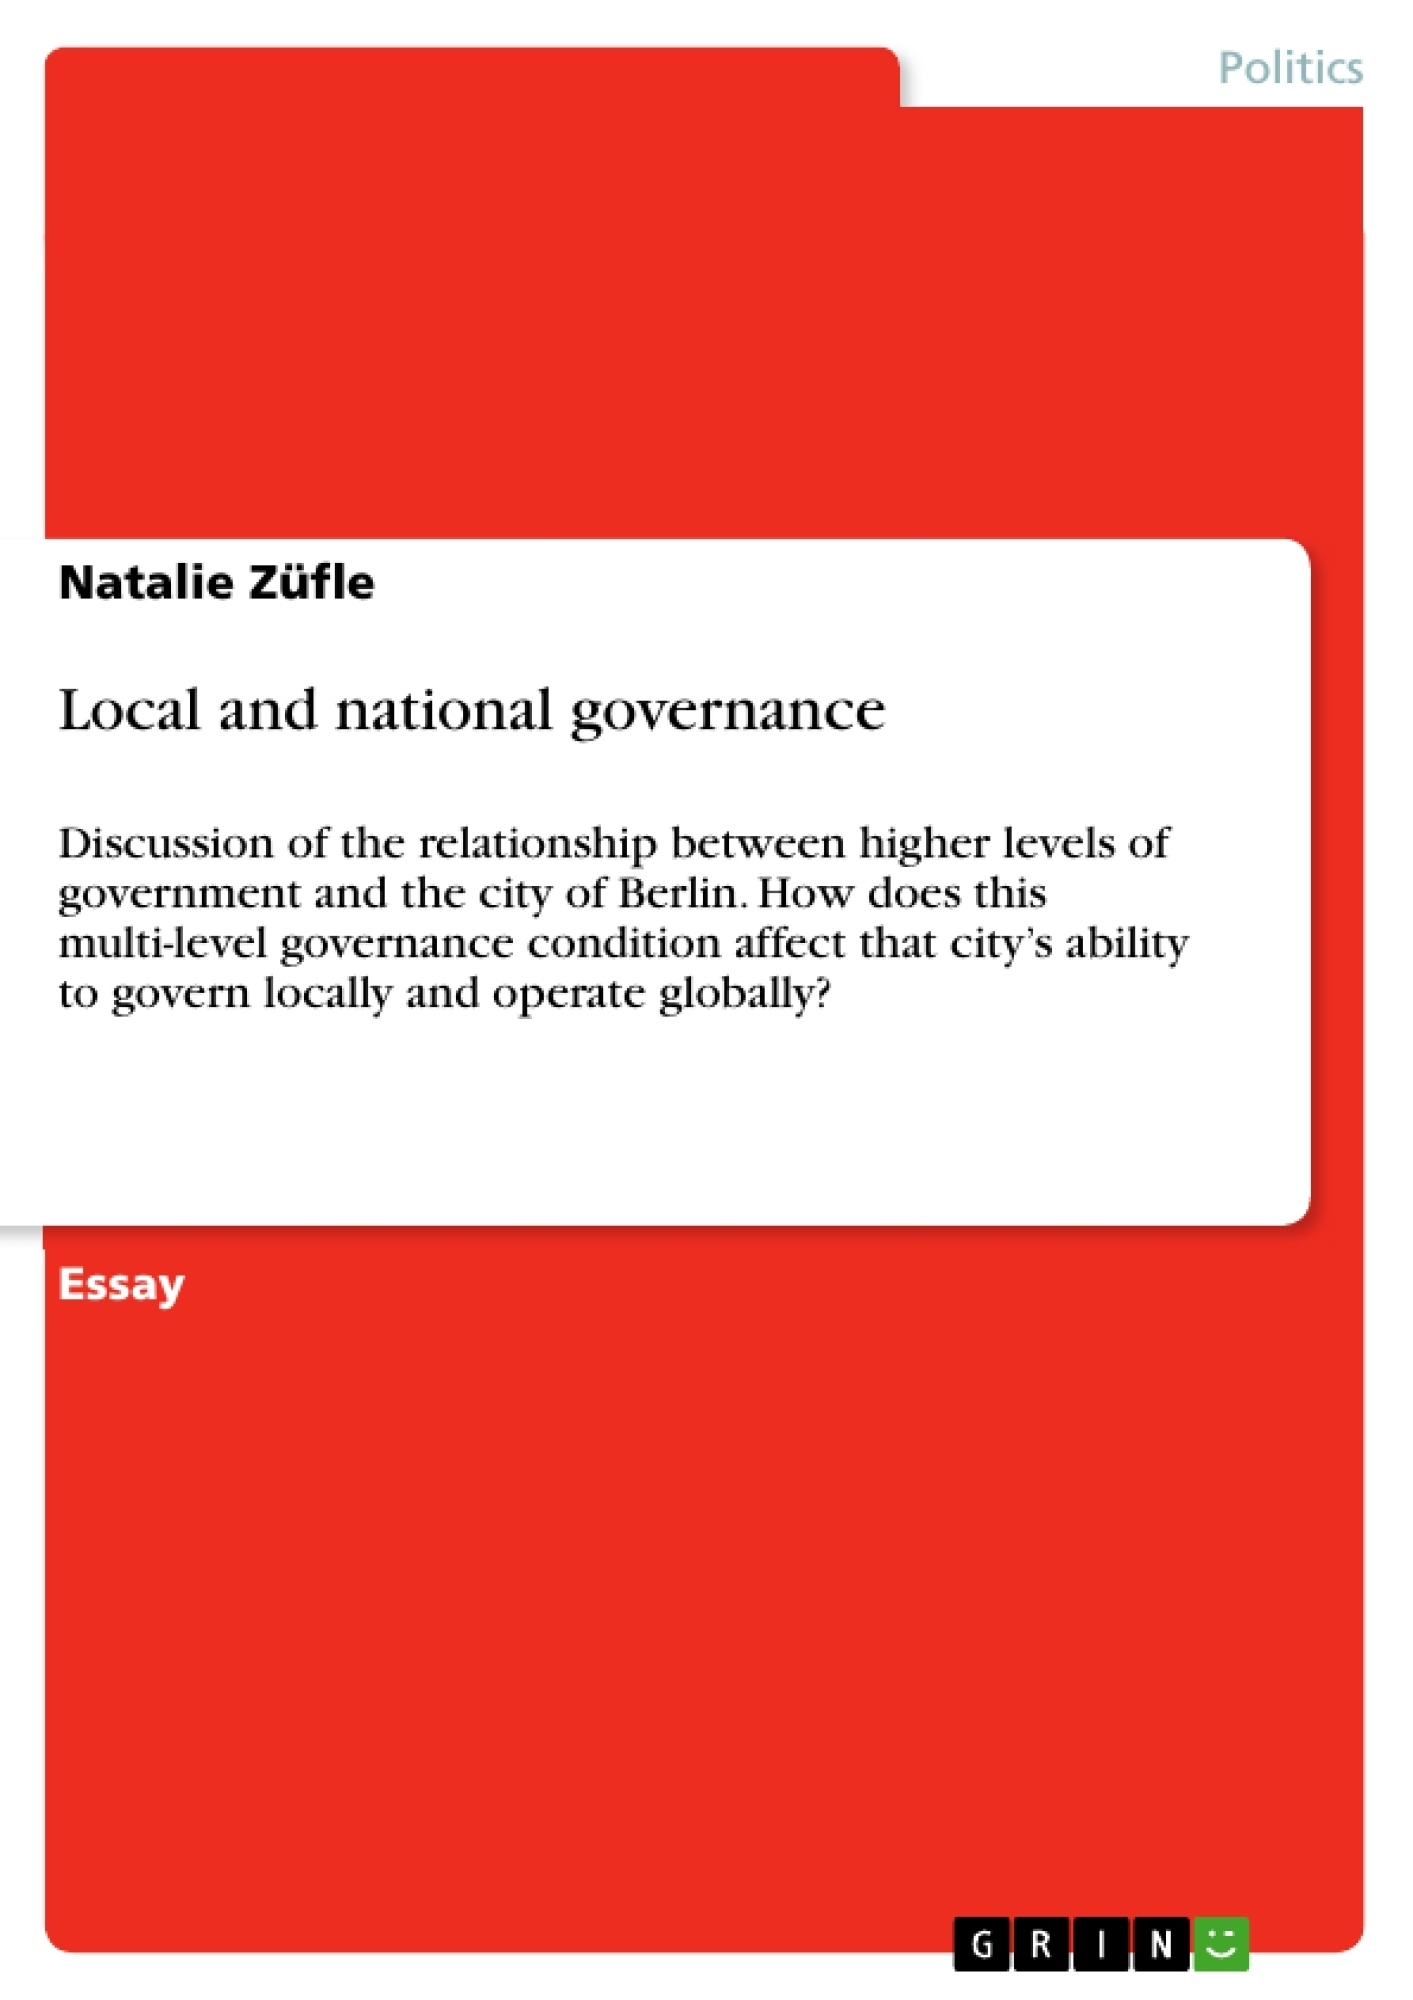 Title: Local and national governance